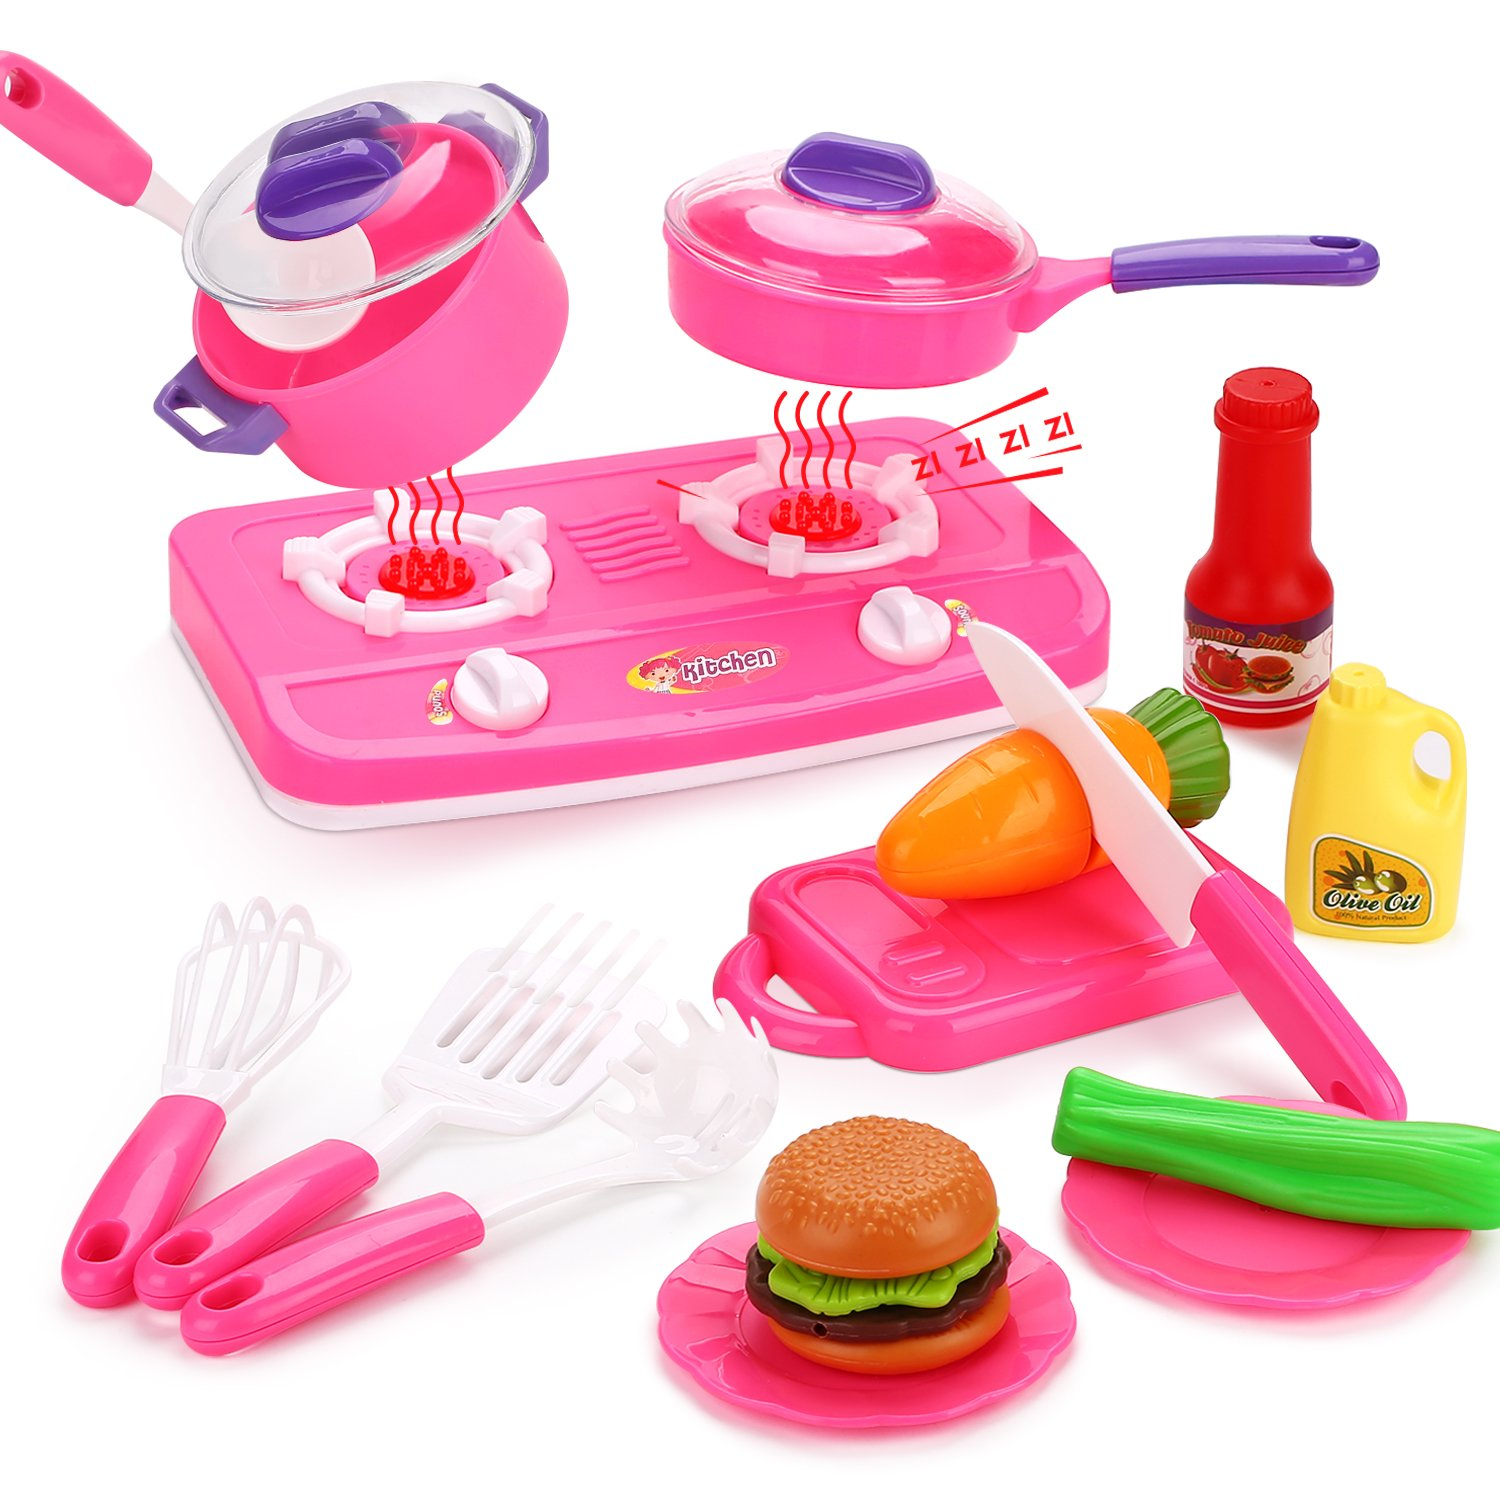 Peradix Assorted Kitchen Appliance Toys & Play Food Cooking for Kids Early Age Development Educational (22pcs)